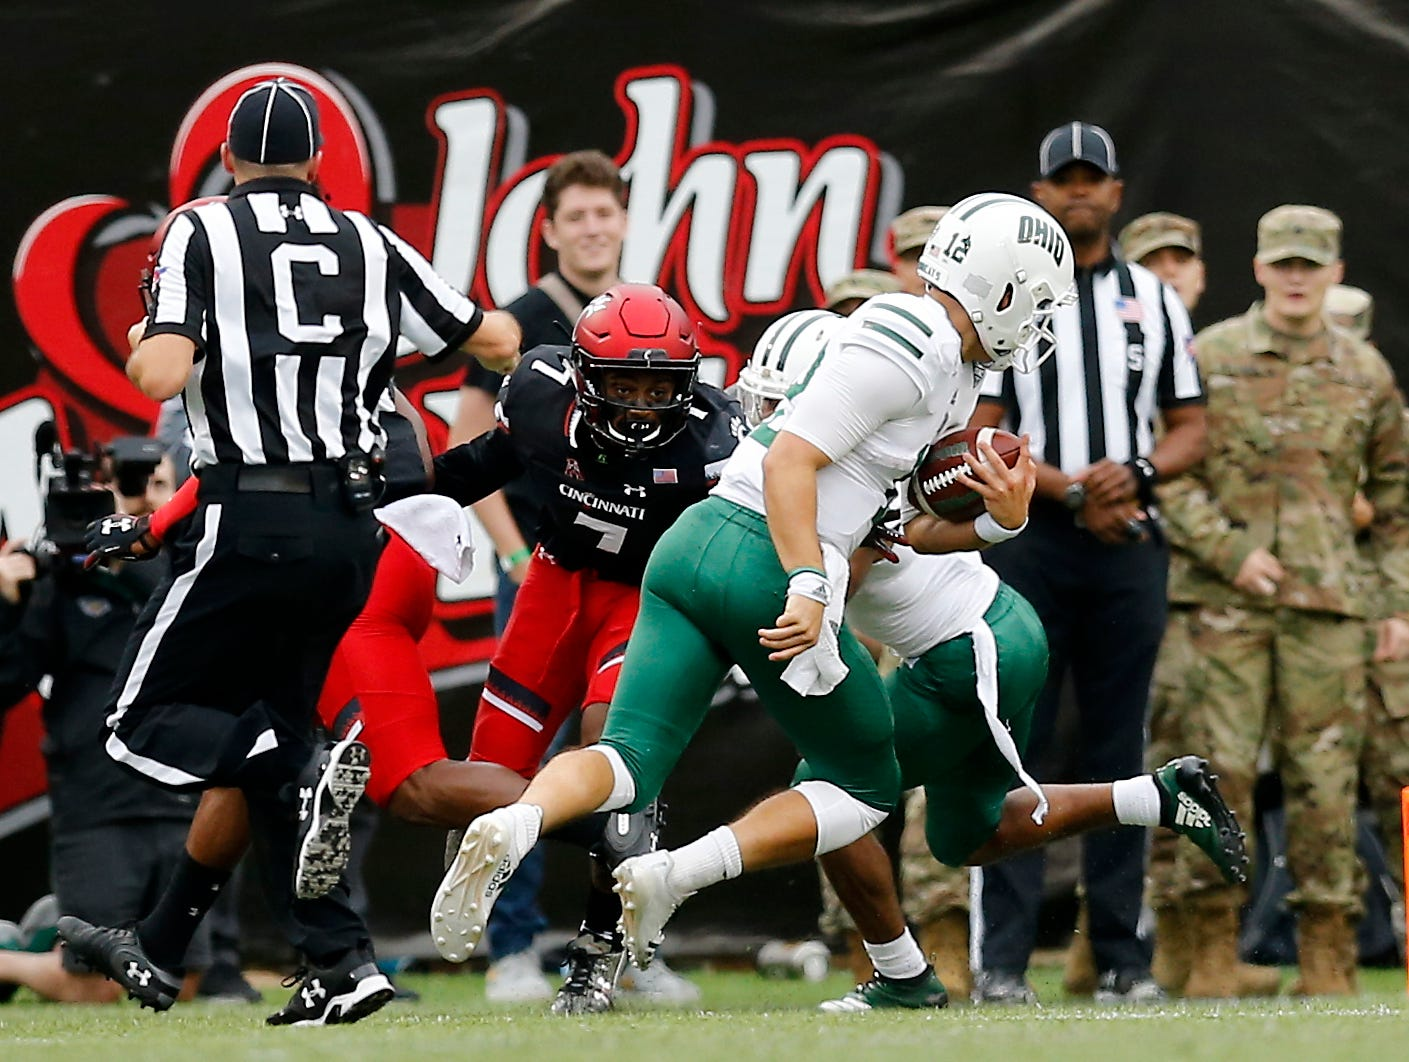 Ohio Bobcats quarterback Nathan Rourke (12) runs in a touchdown in the second quarter of the NCAA football game between the Cincinnati Bearcats and the Ohio Bobcats at Nippert Stadium on the University of Cincinnati campus in Cincinnati on Saturday, Sept. 22, 2018. The Bobcats led 24-7 at halftime.